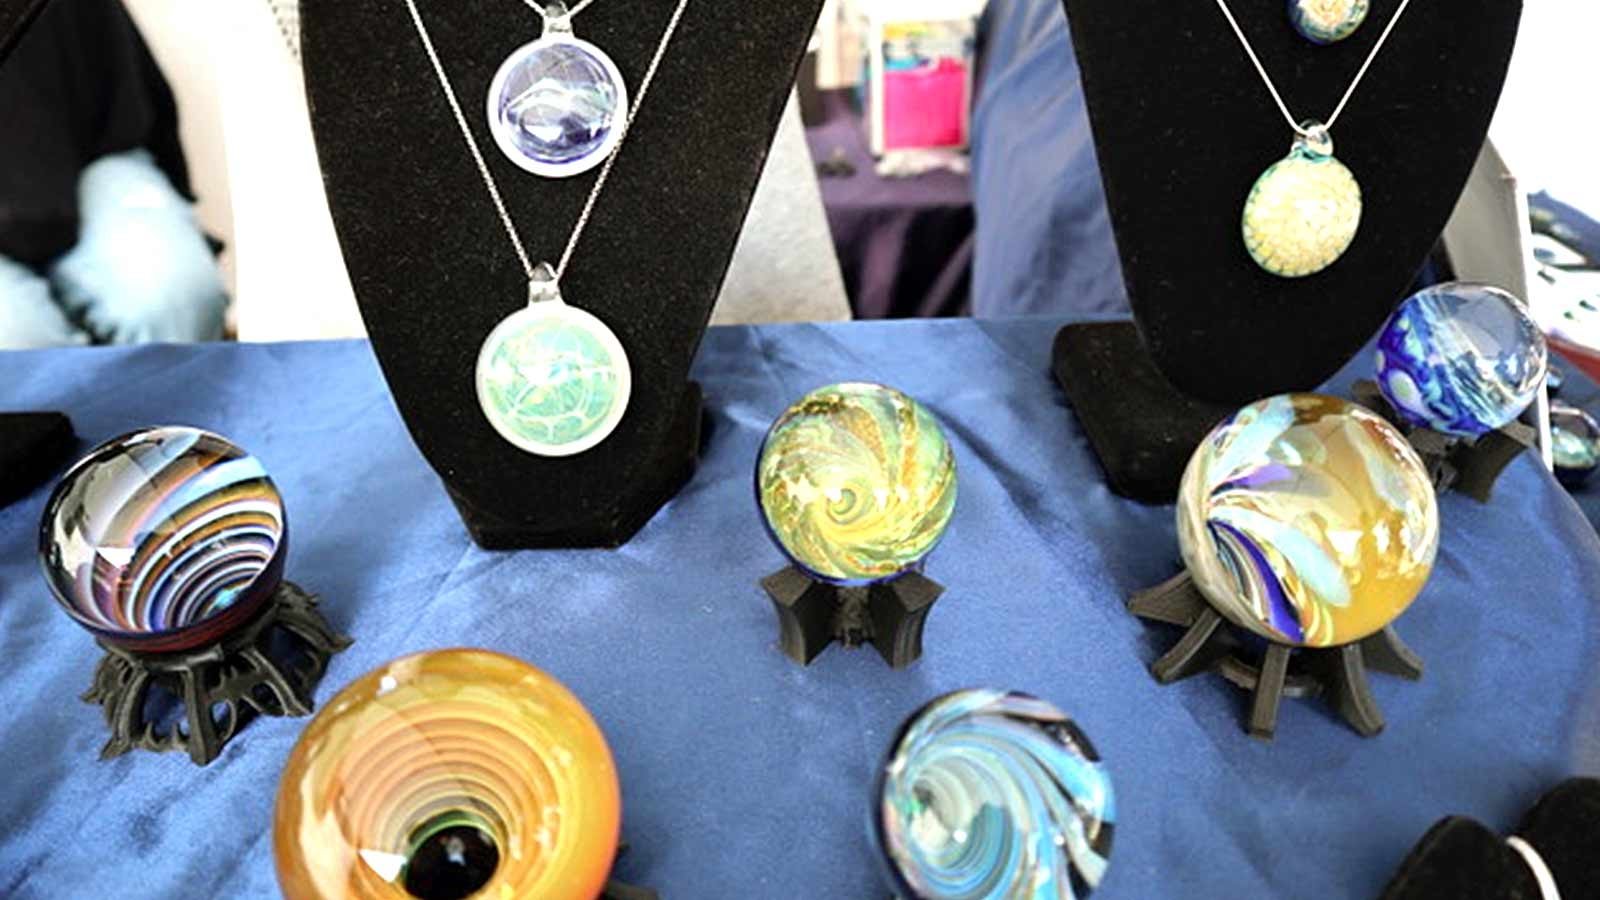 Colourful glass & jewelry art at Saturday Market at Salt Spring Island BC Canada